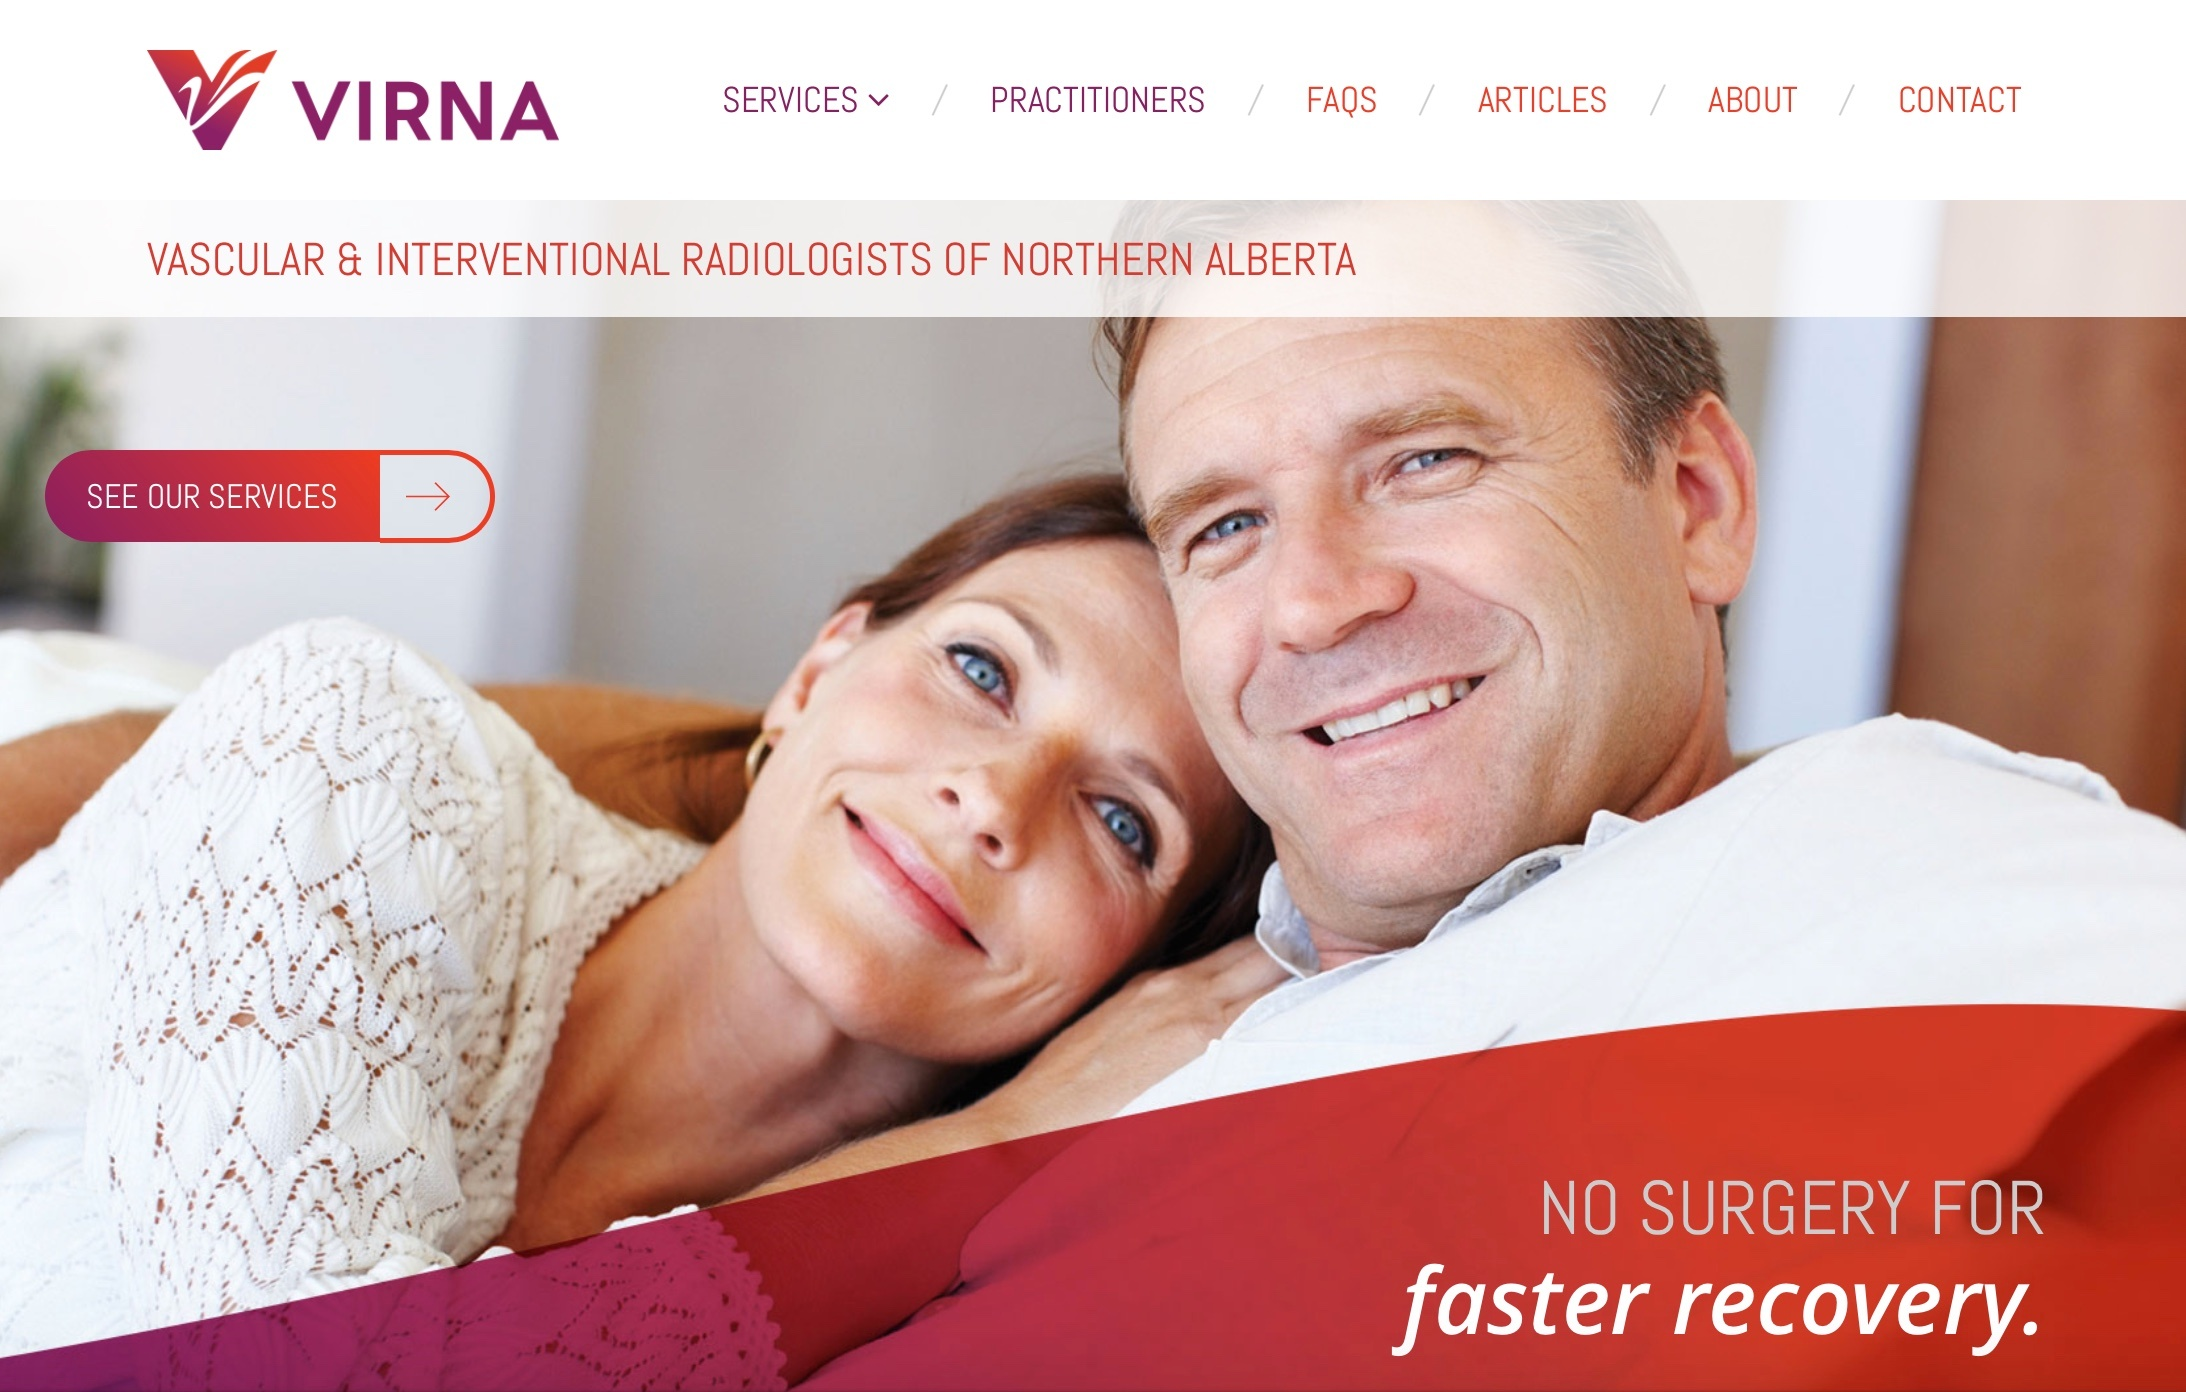 New Website for a Revolutionary Edmonton Healthcare Provider